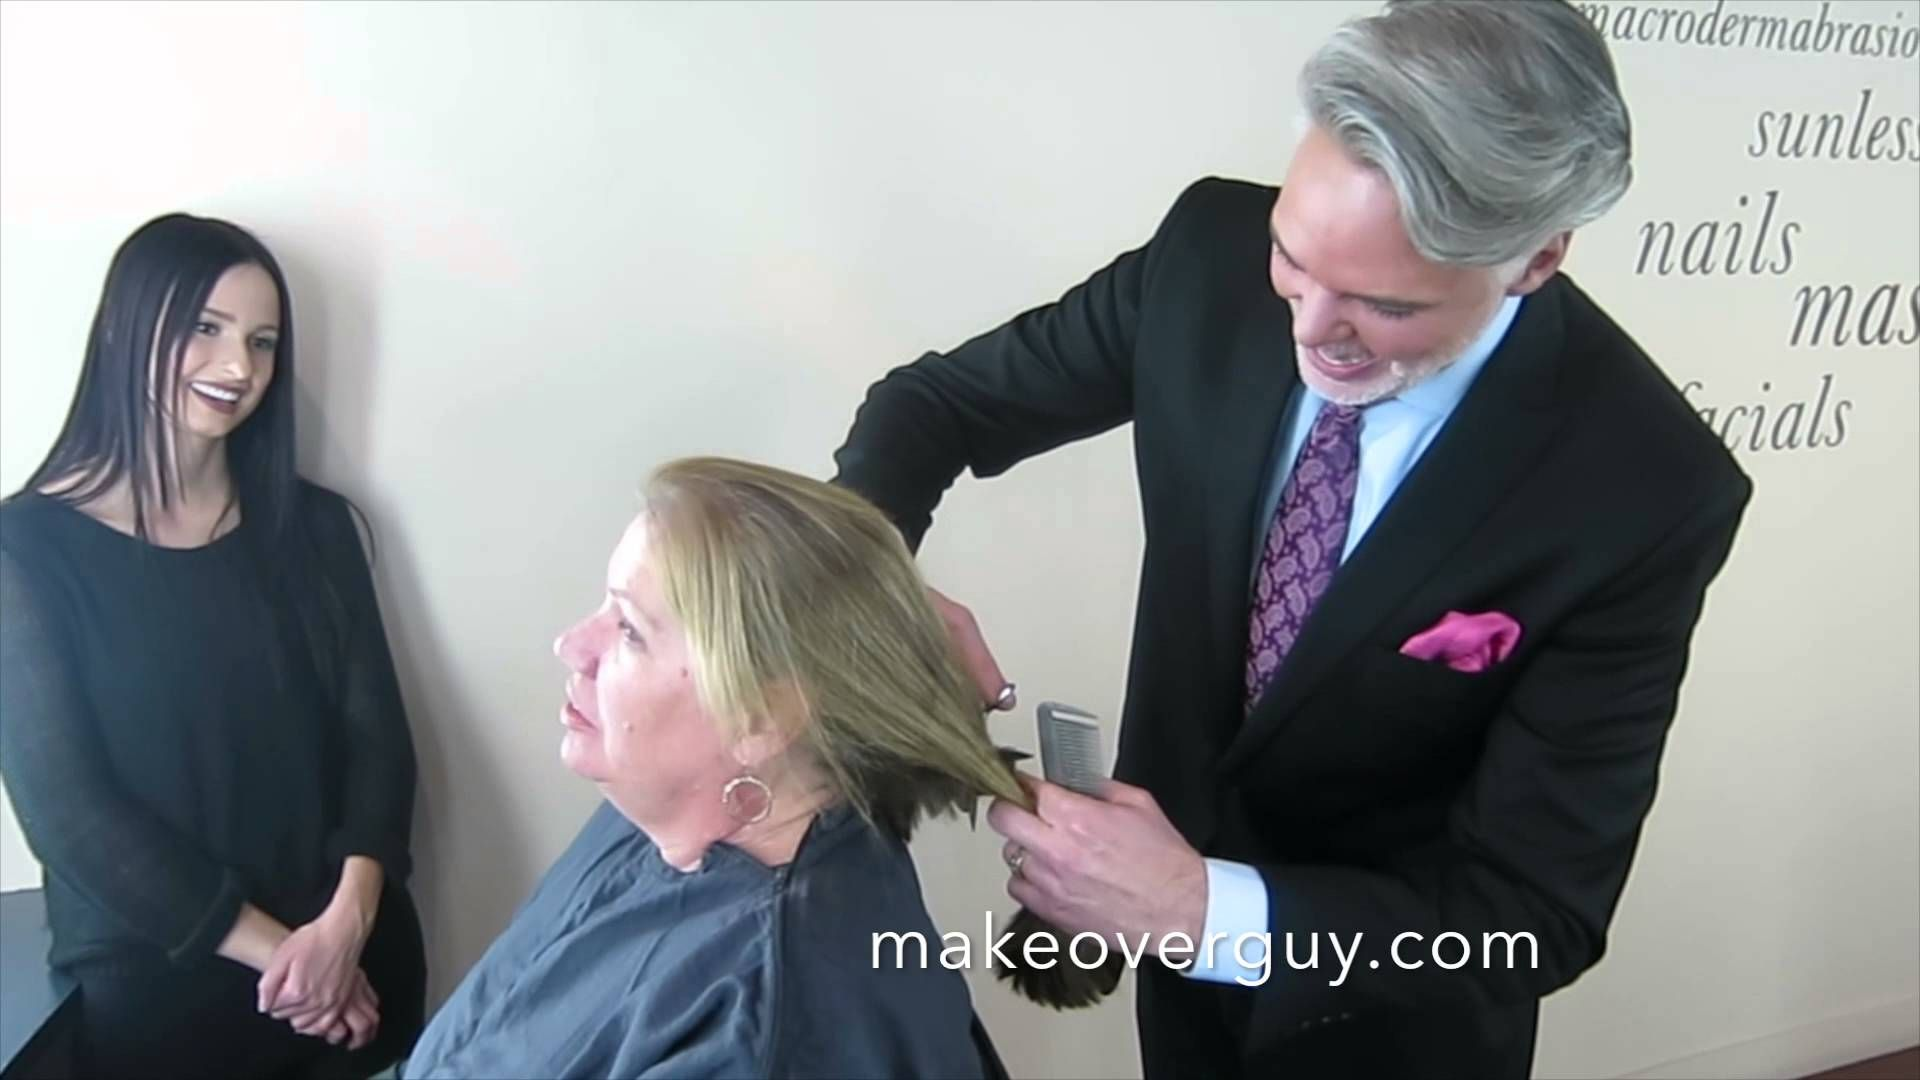 dramatic long hair cut short makeover by christopher makeover long and straight to short and curly by